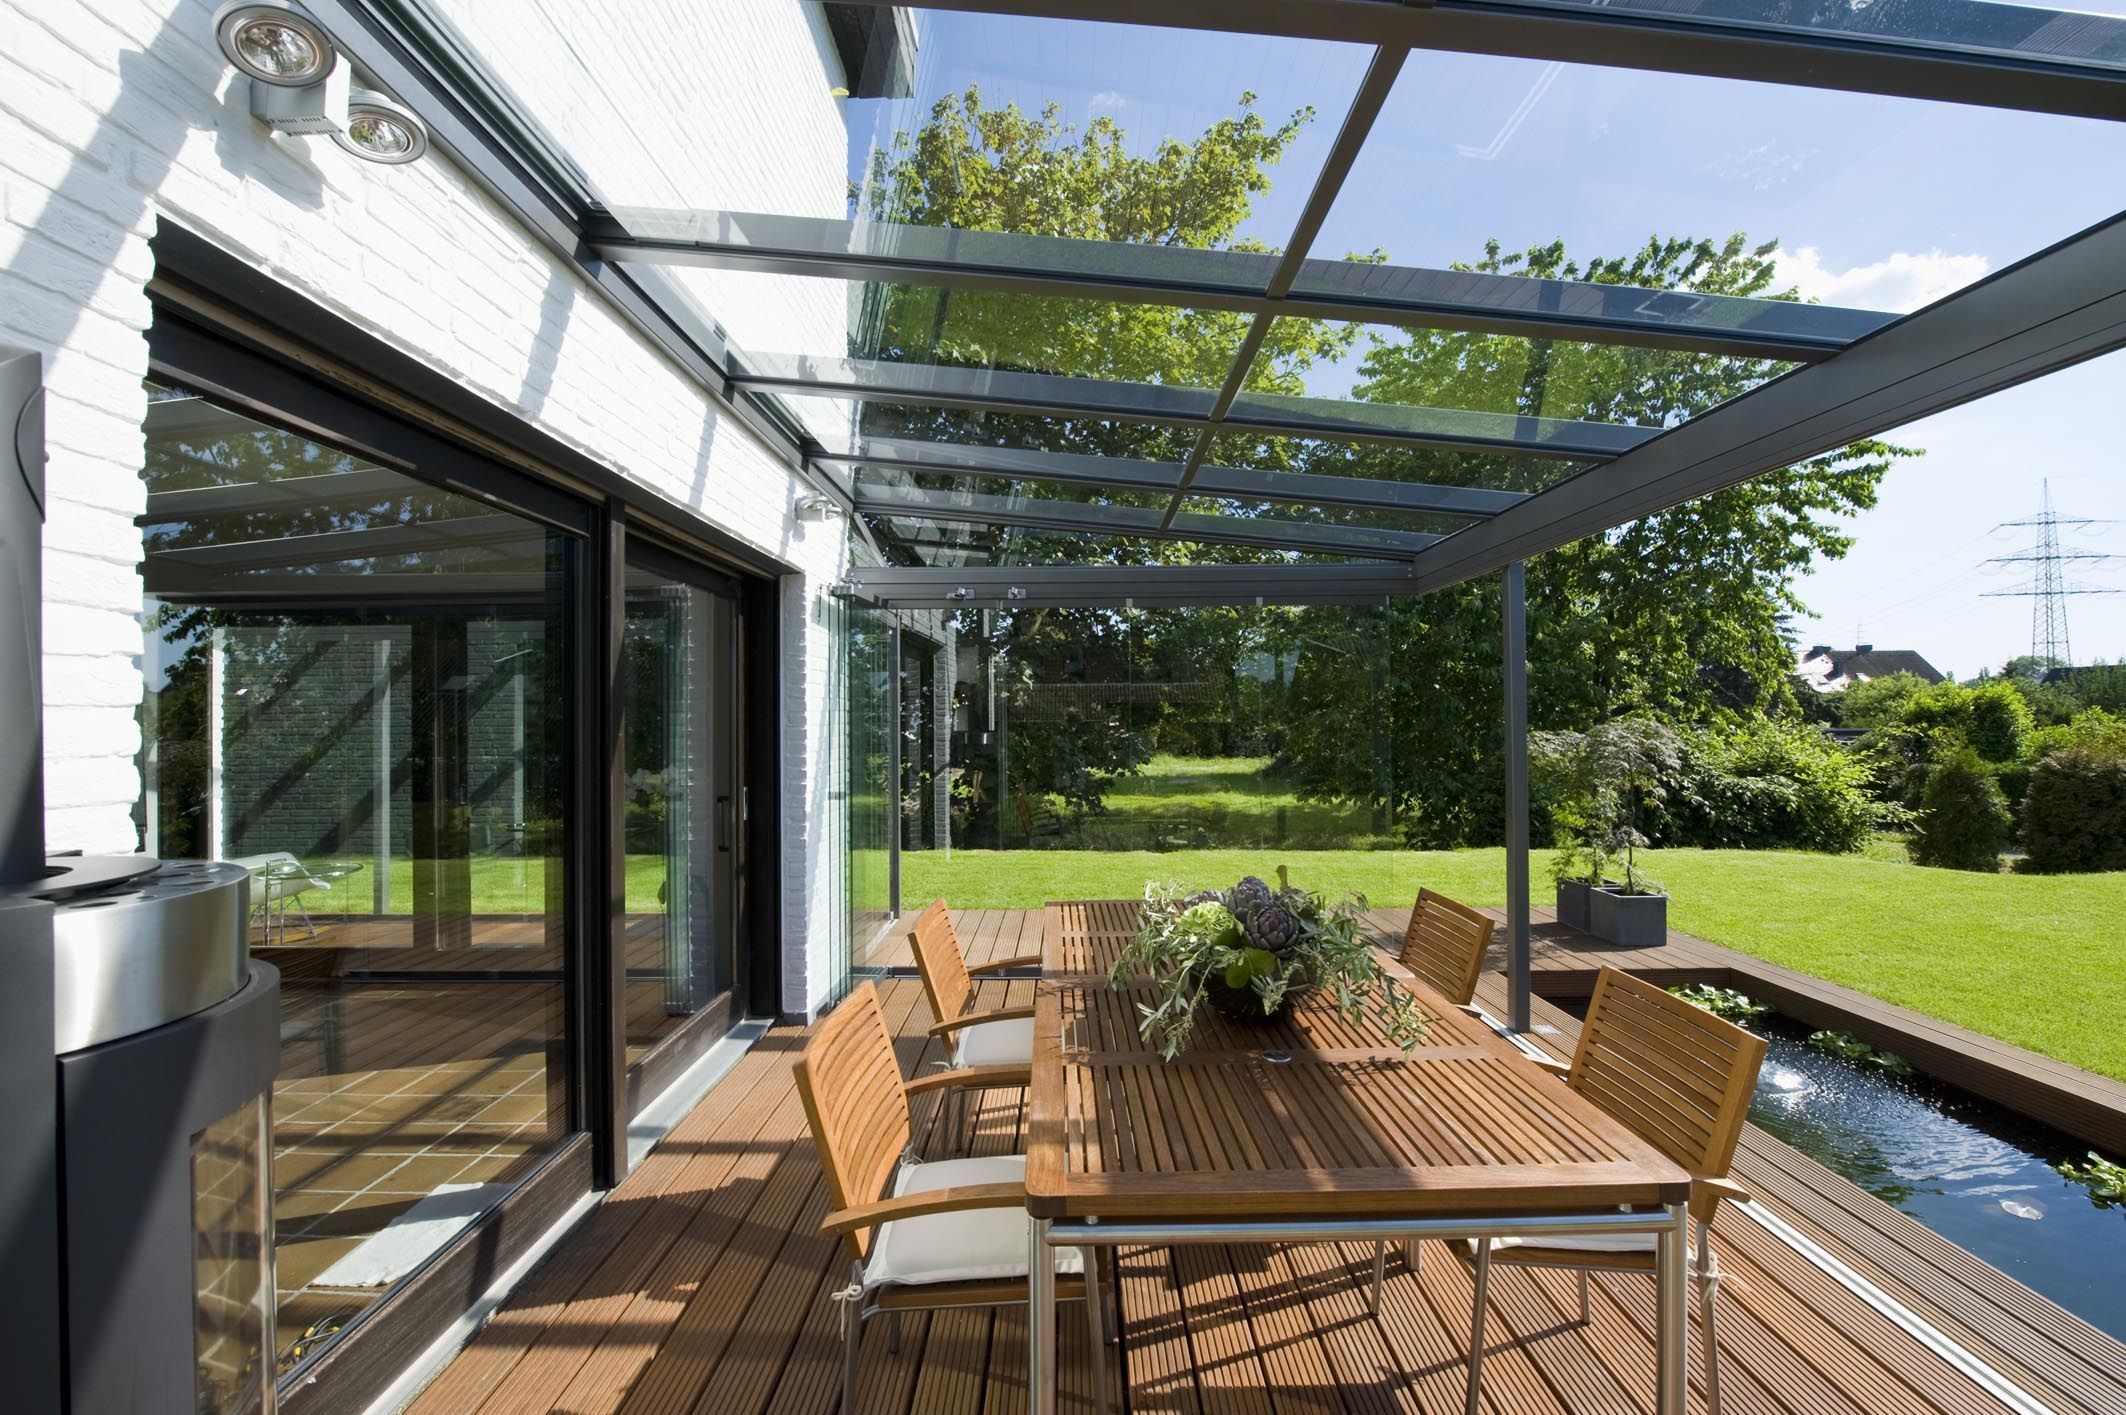 Glass-Verandas allow you a completely unobstructed view!